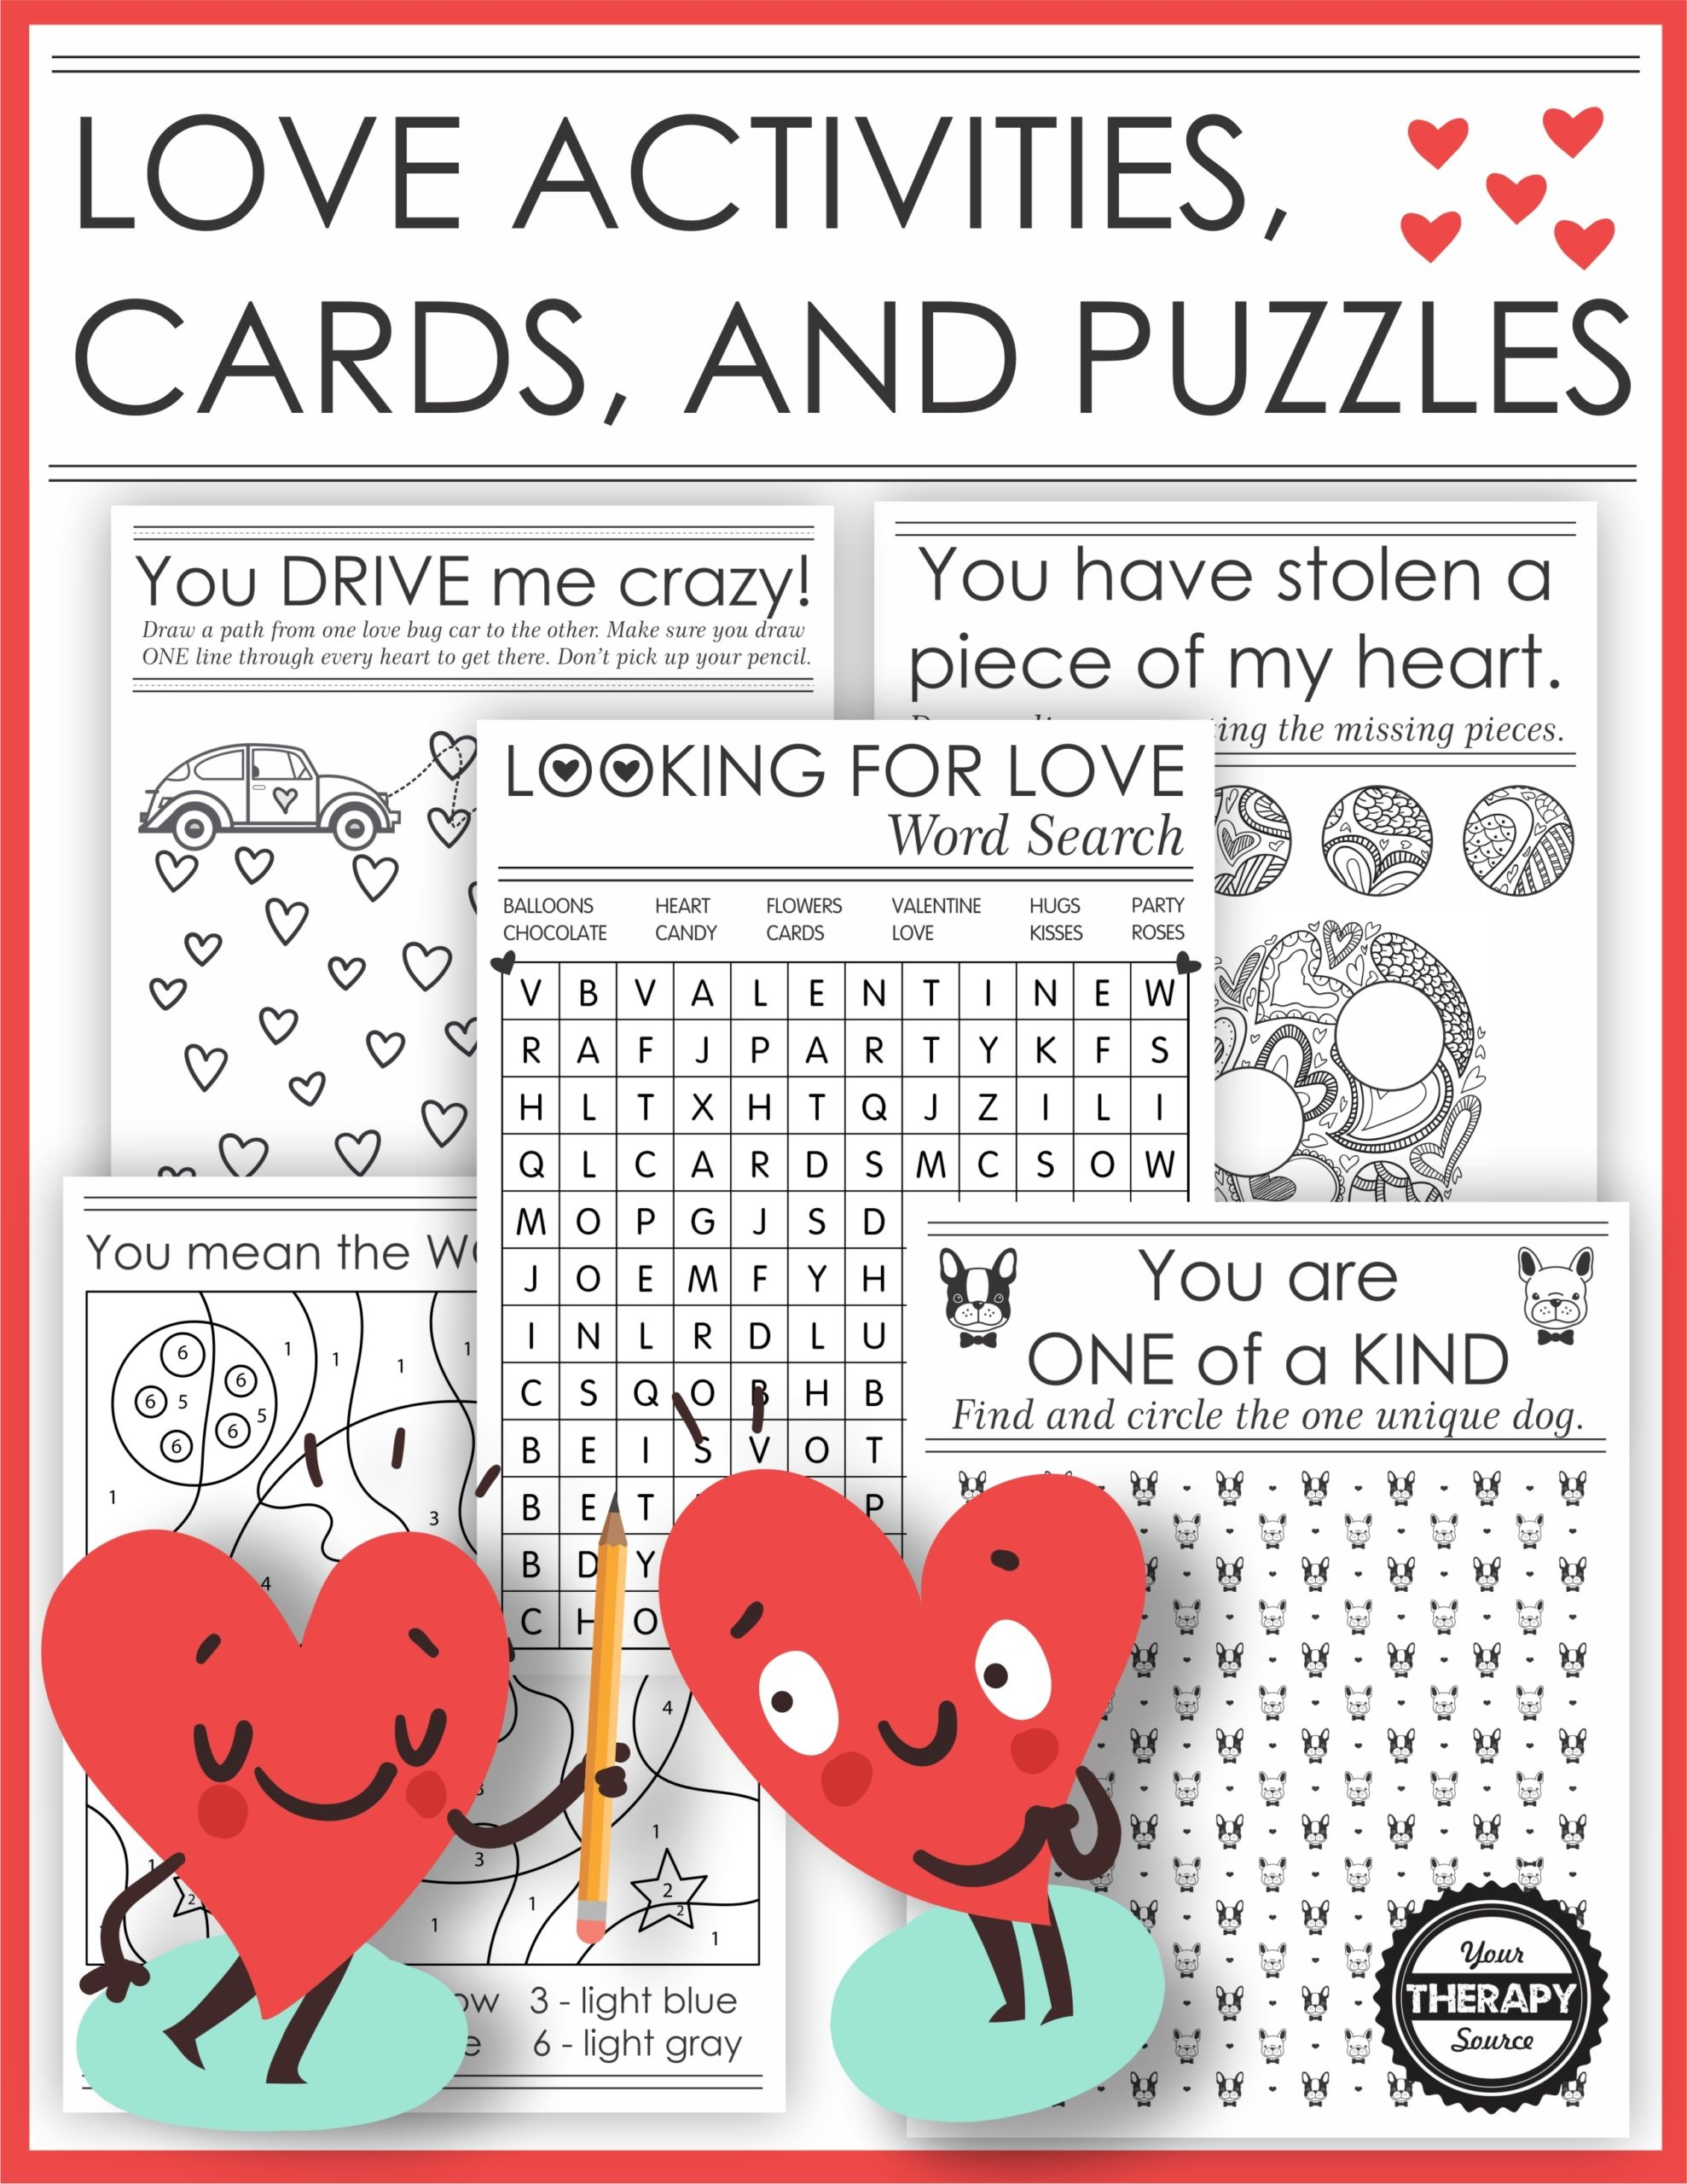 Puzzles About Love